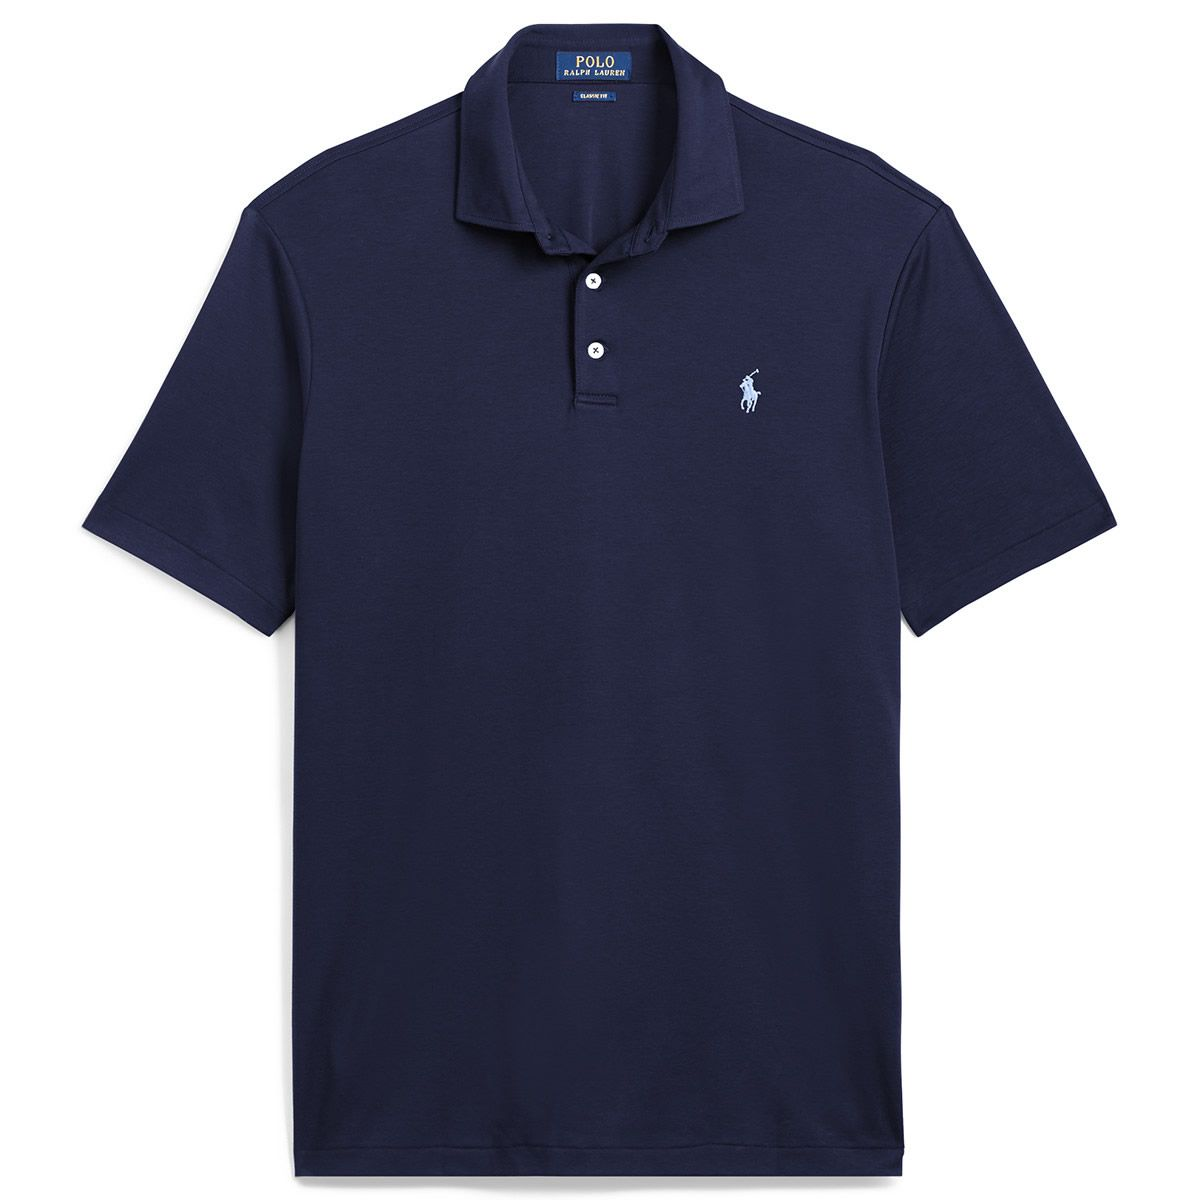 4dba9e5a Polo Ralph Lauren Mens Polo Shirts - Macy's